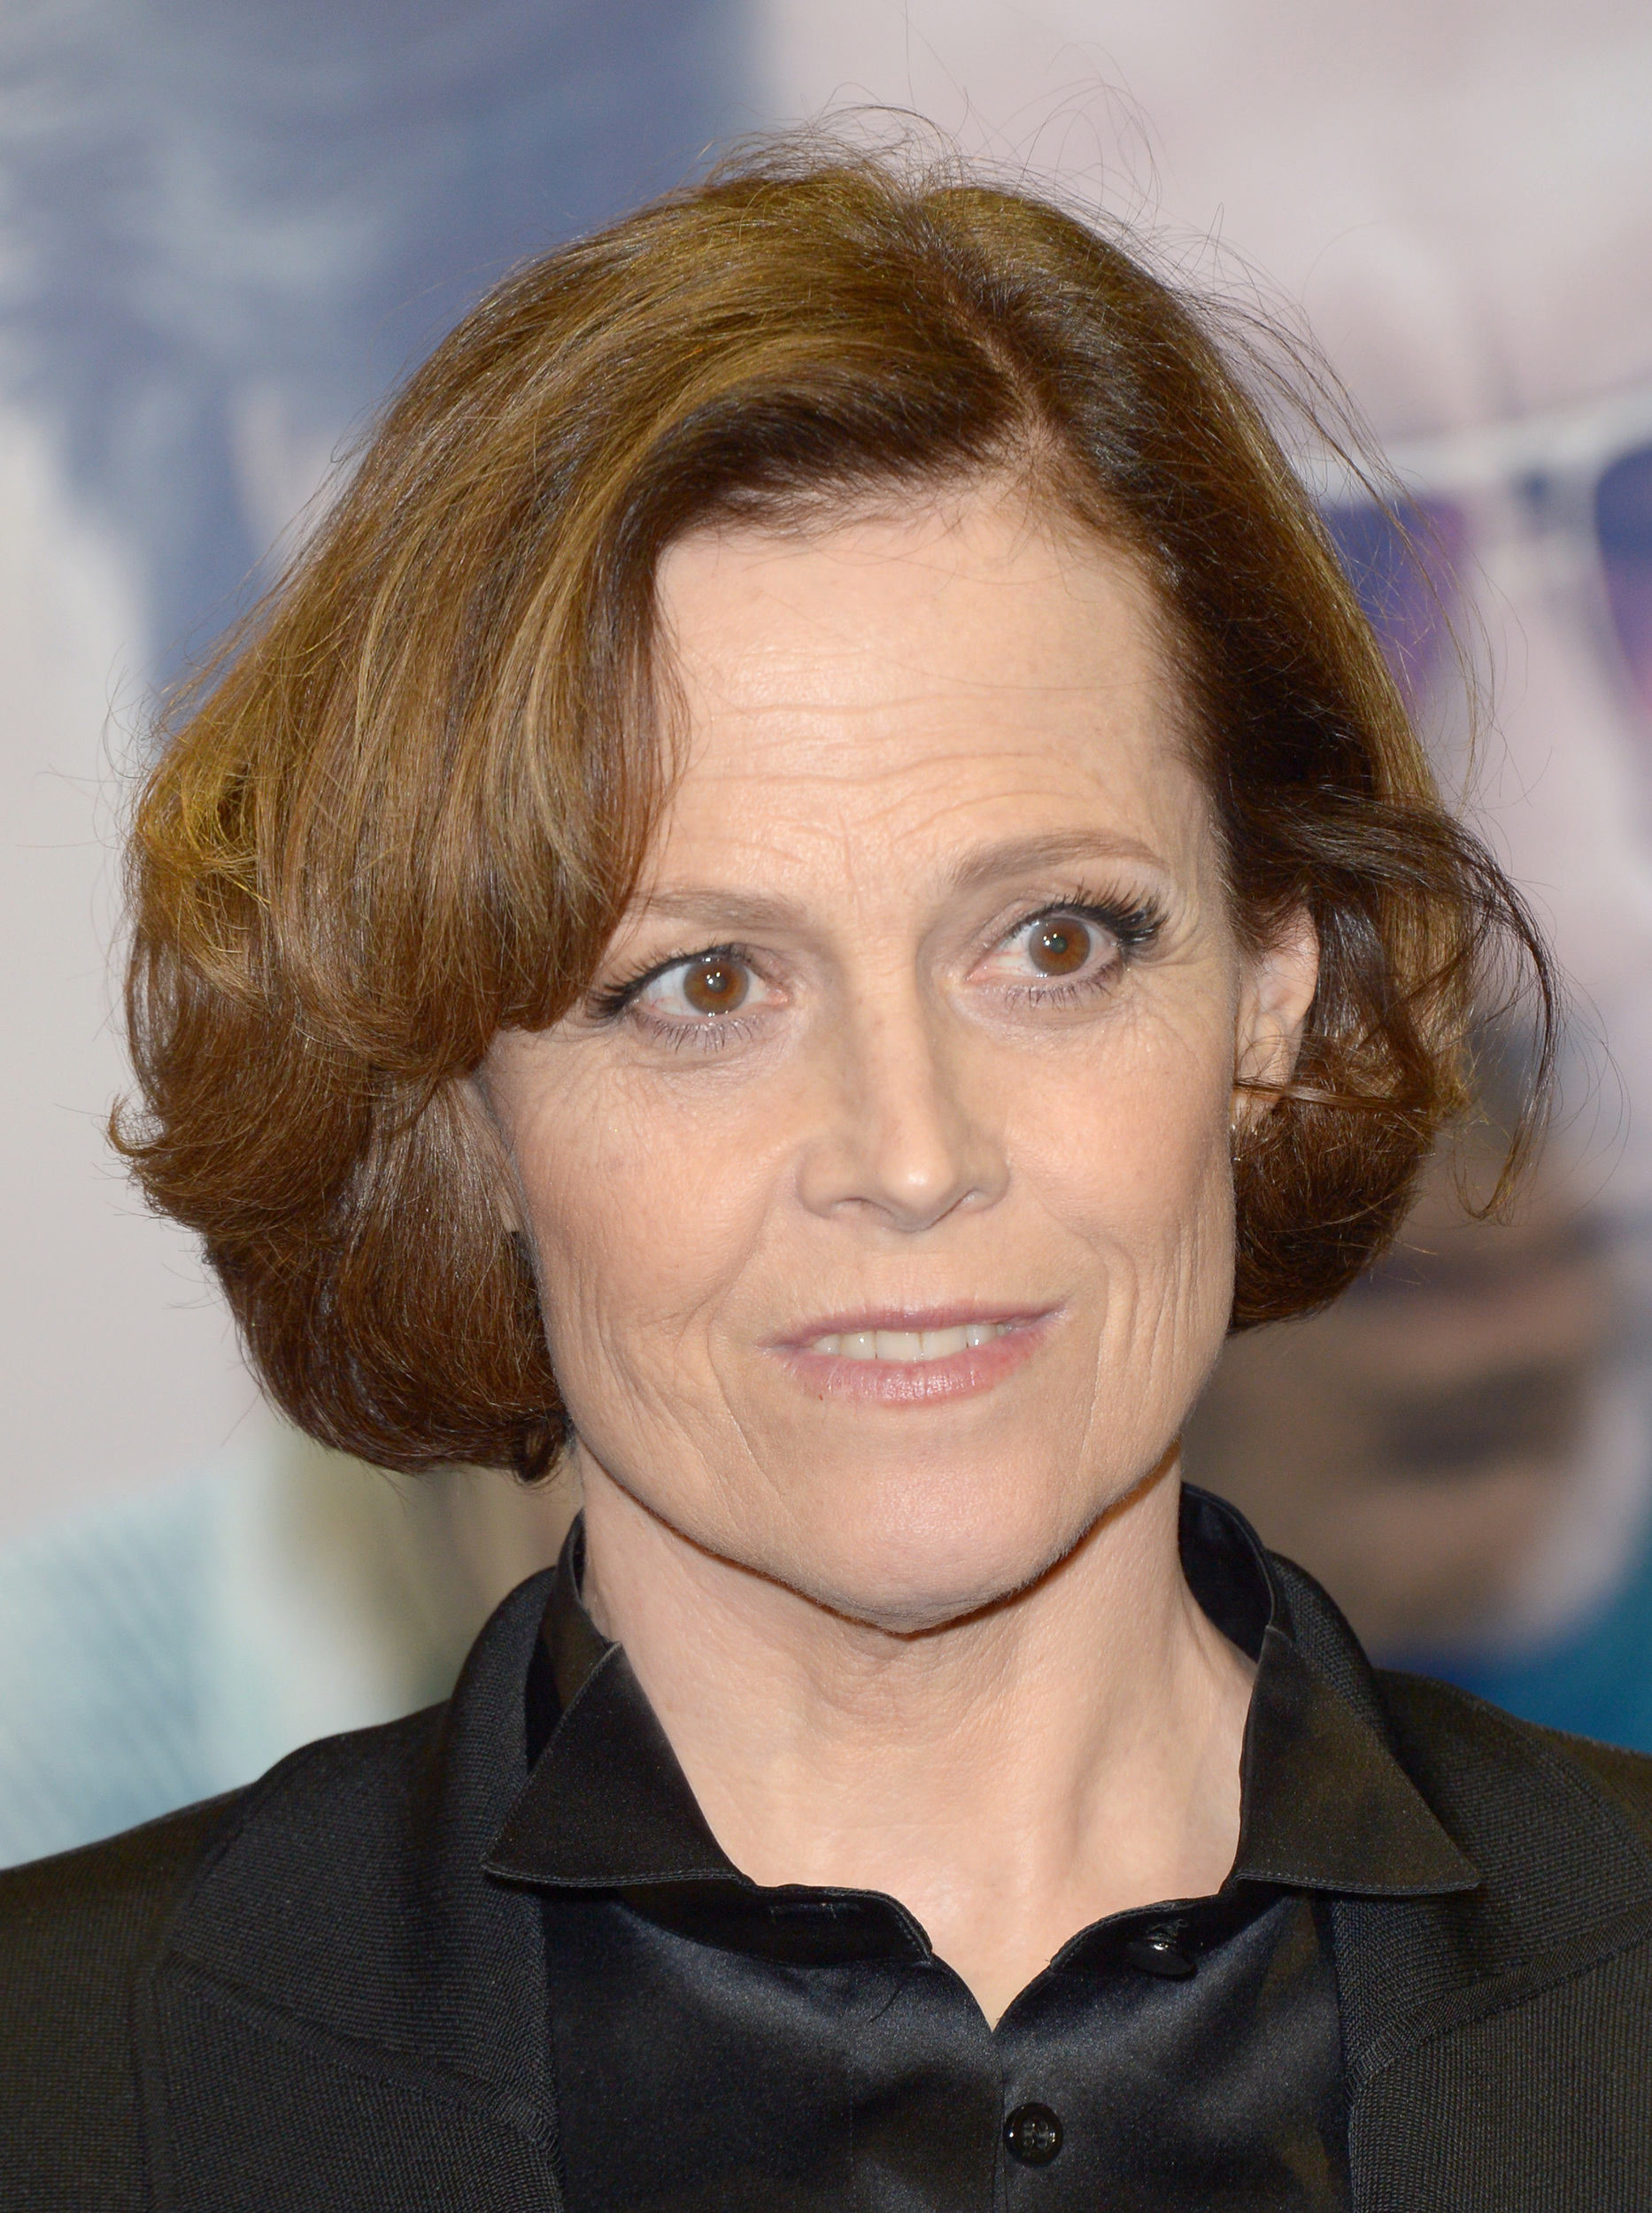 Sigourney Weaver Filmography And Biography On Movies Film: Sigourney Weaver Reprises 'Alien' Role In New Game